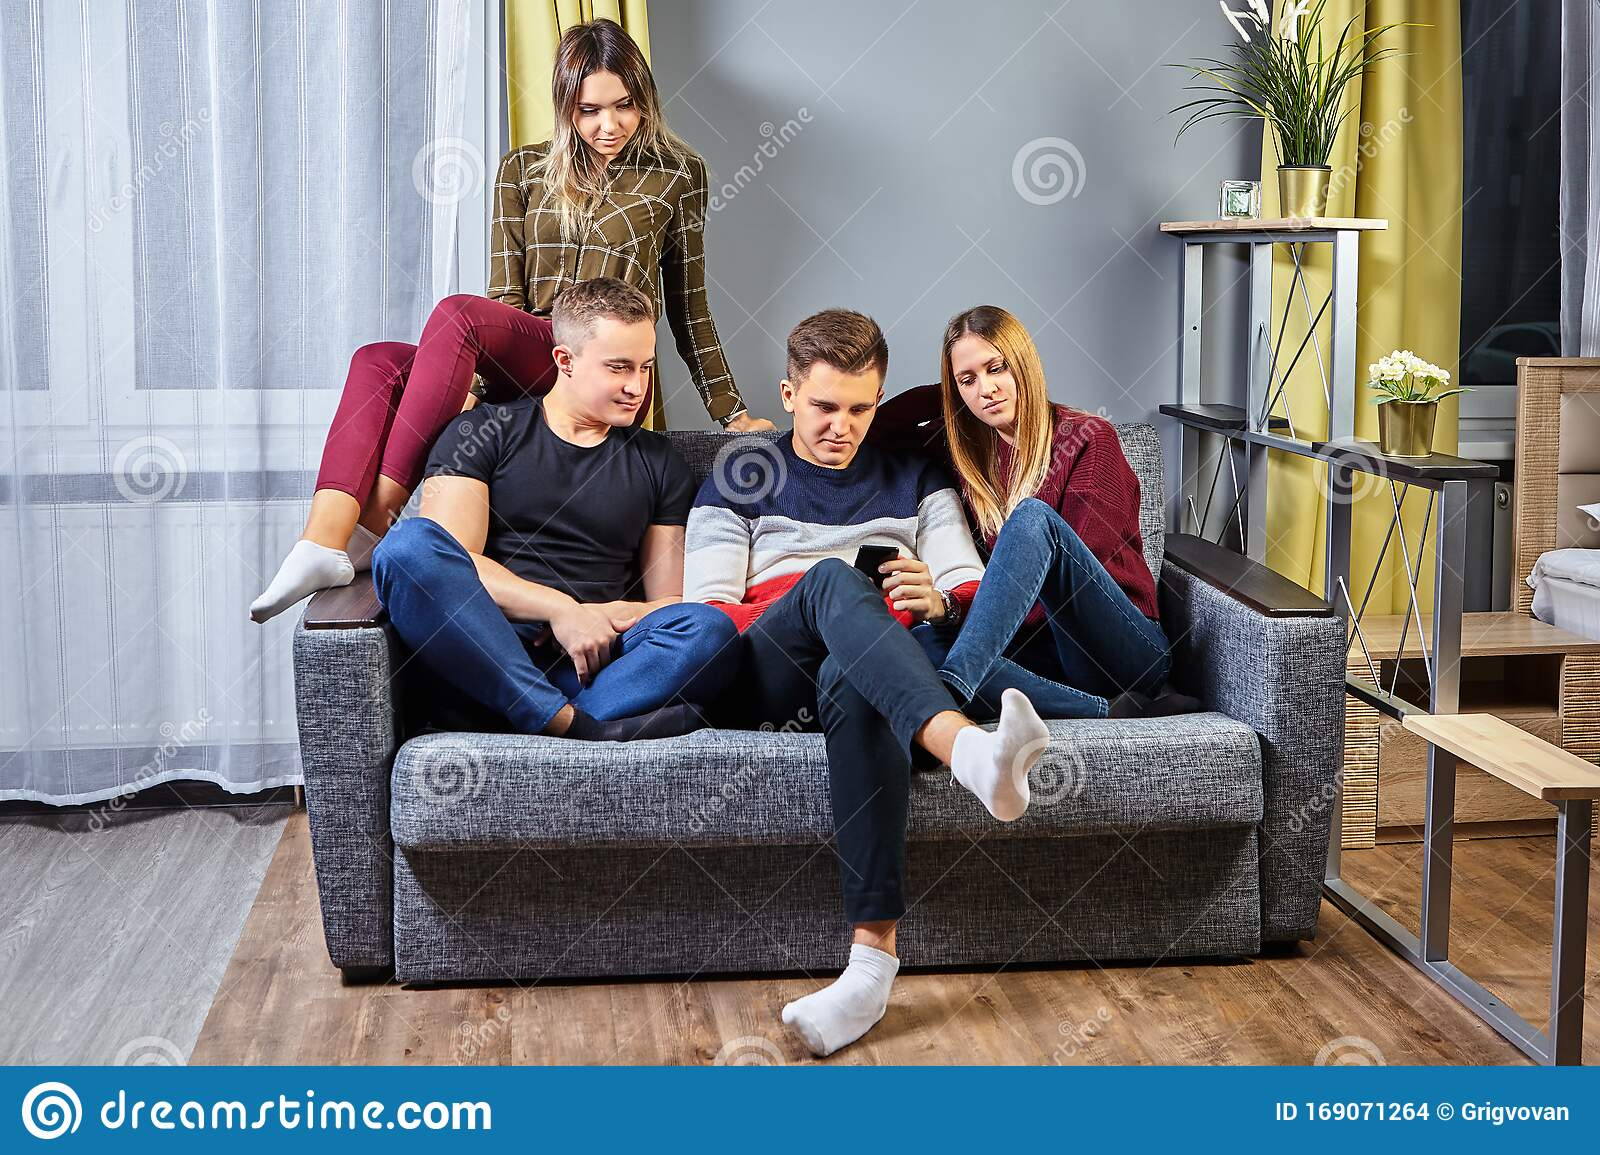 Four Students In A College Dorm Room Stock Photo Image Of Boyfriend Four 169071264